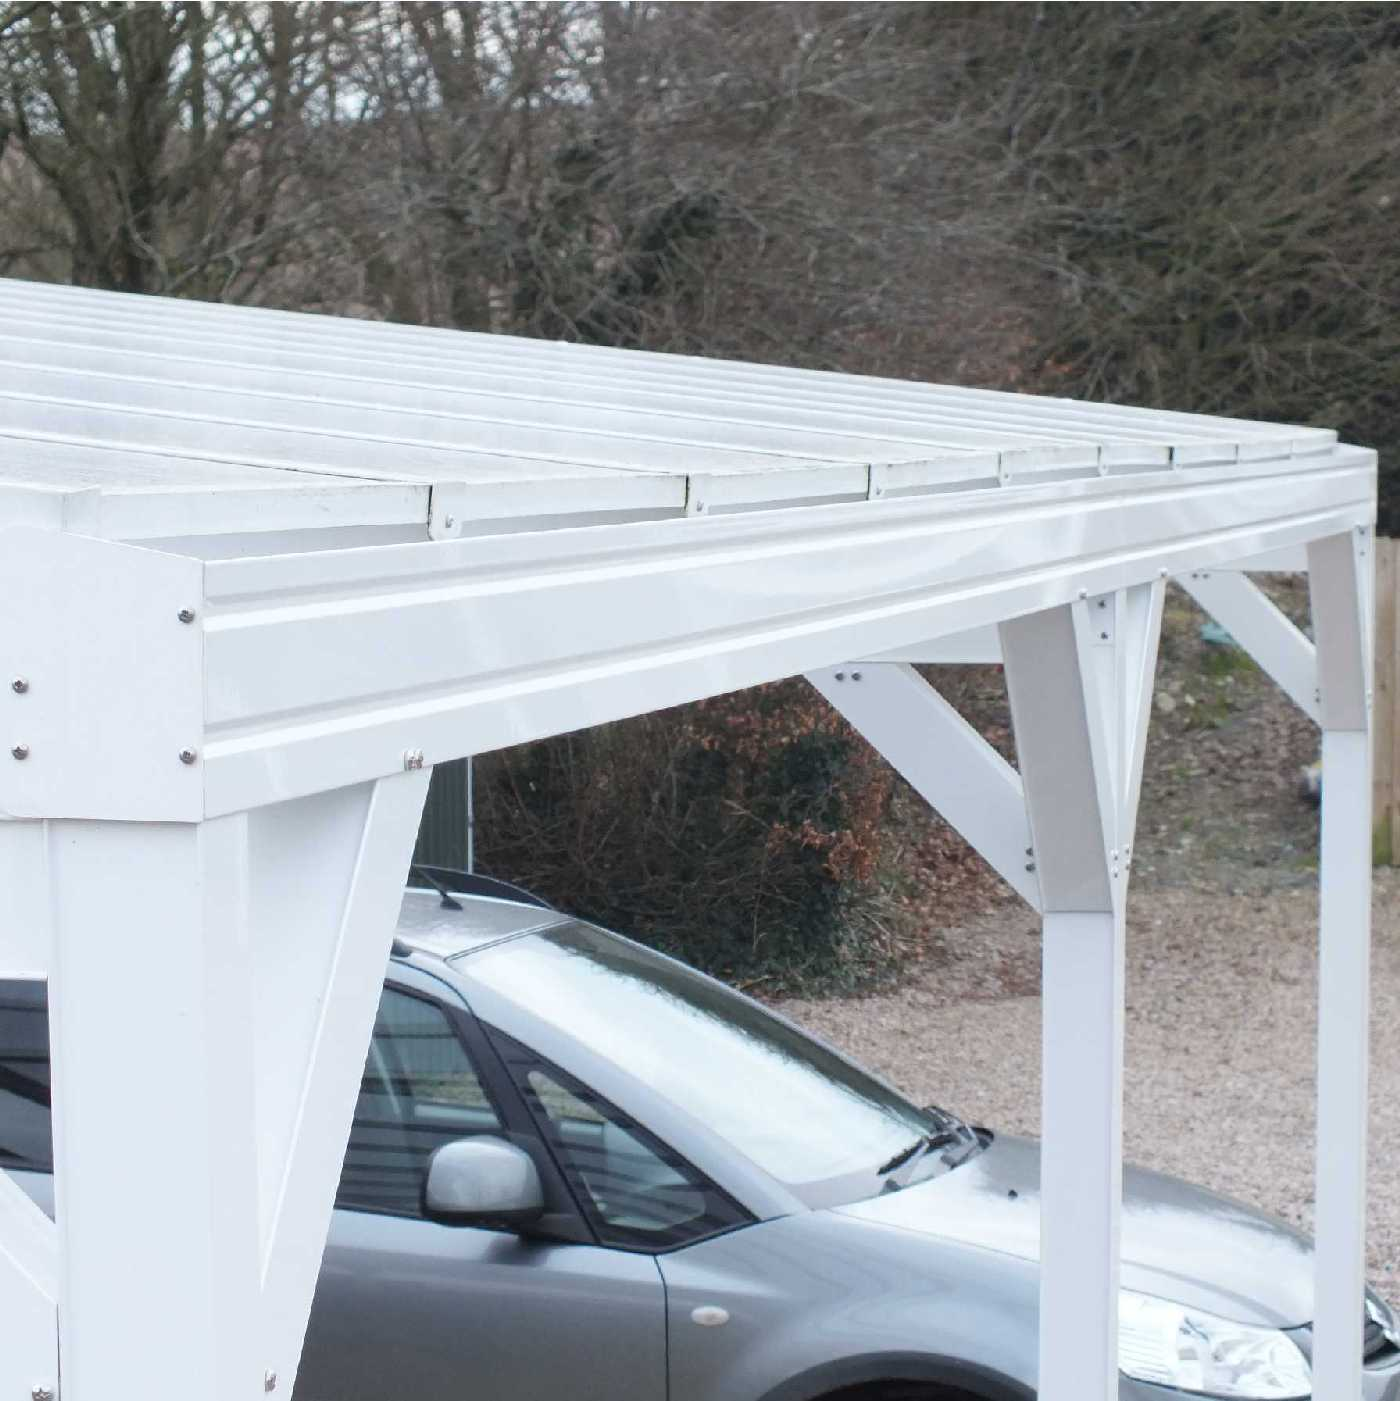 Omega Smart Free-Standing, MonoPitch Roof Canopy with 16mm Polycarbonate Glazing - 4.2m (W) x 3.0m (P), (6) Supporting Posts from Omega Build